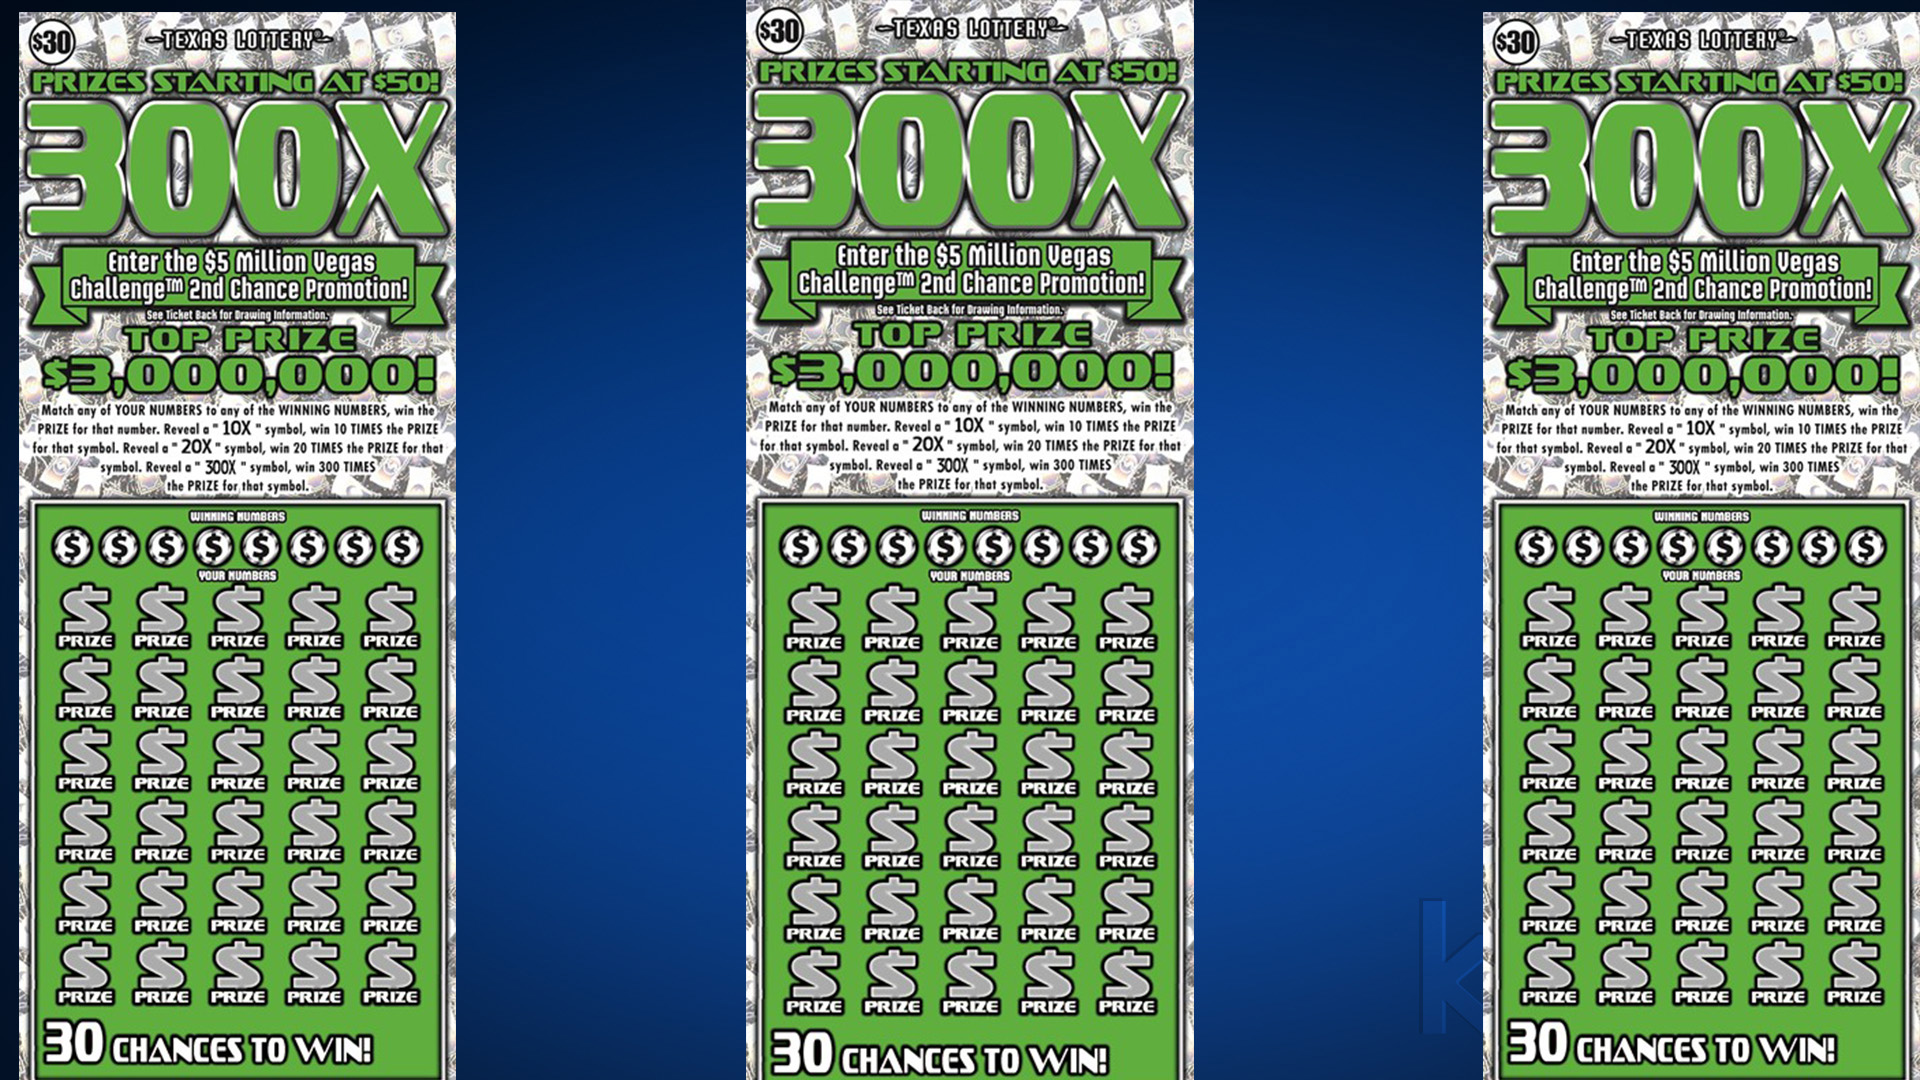 Round Rock resident wins $3M with Texas Lottery scratch ticket